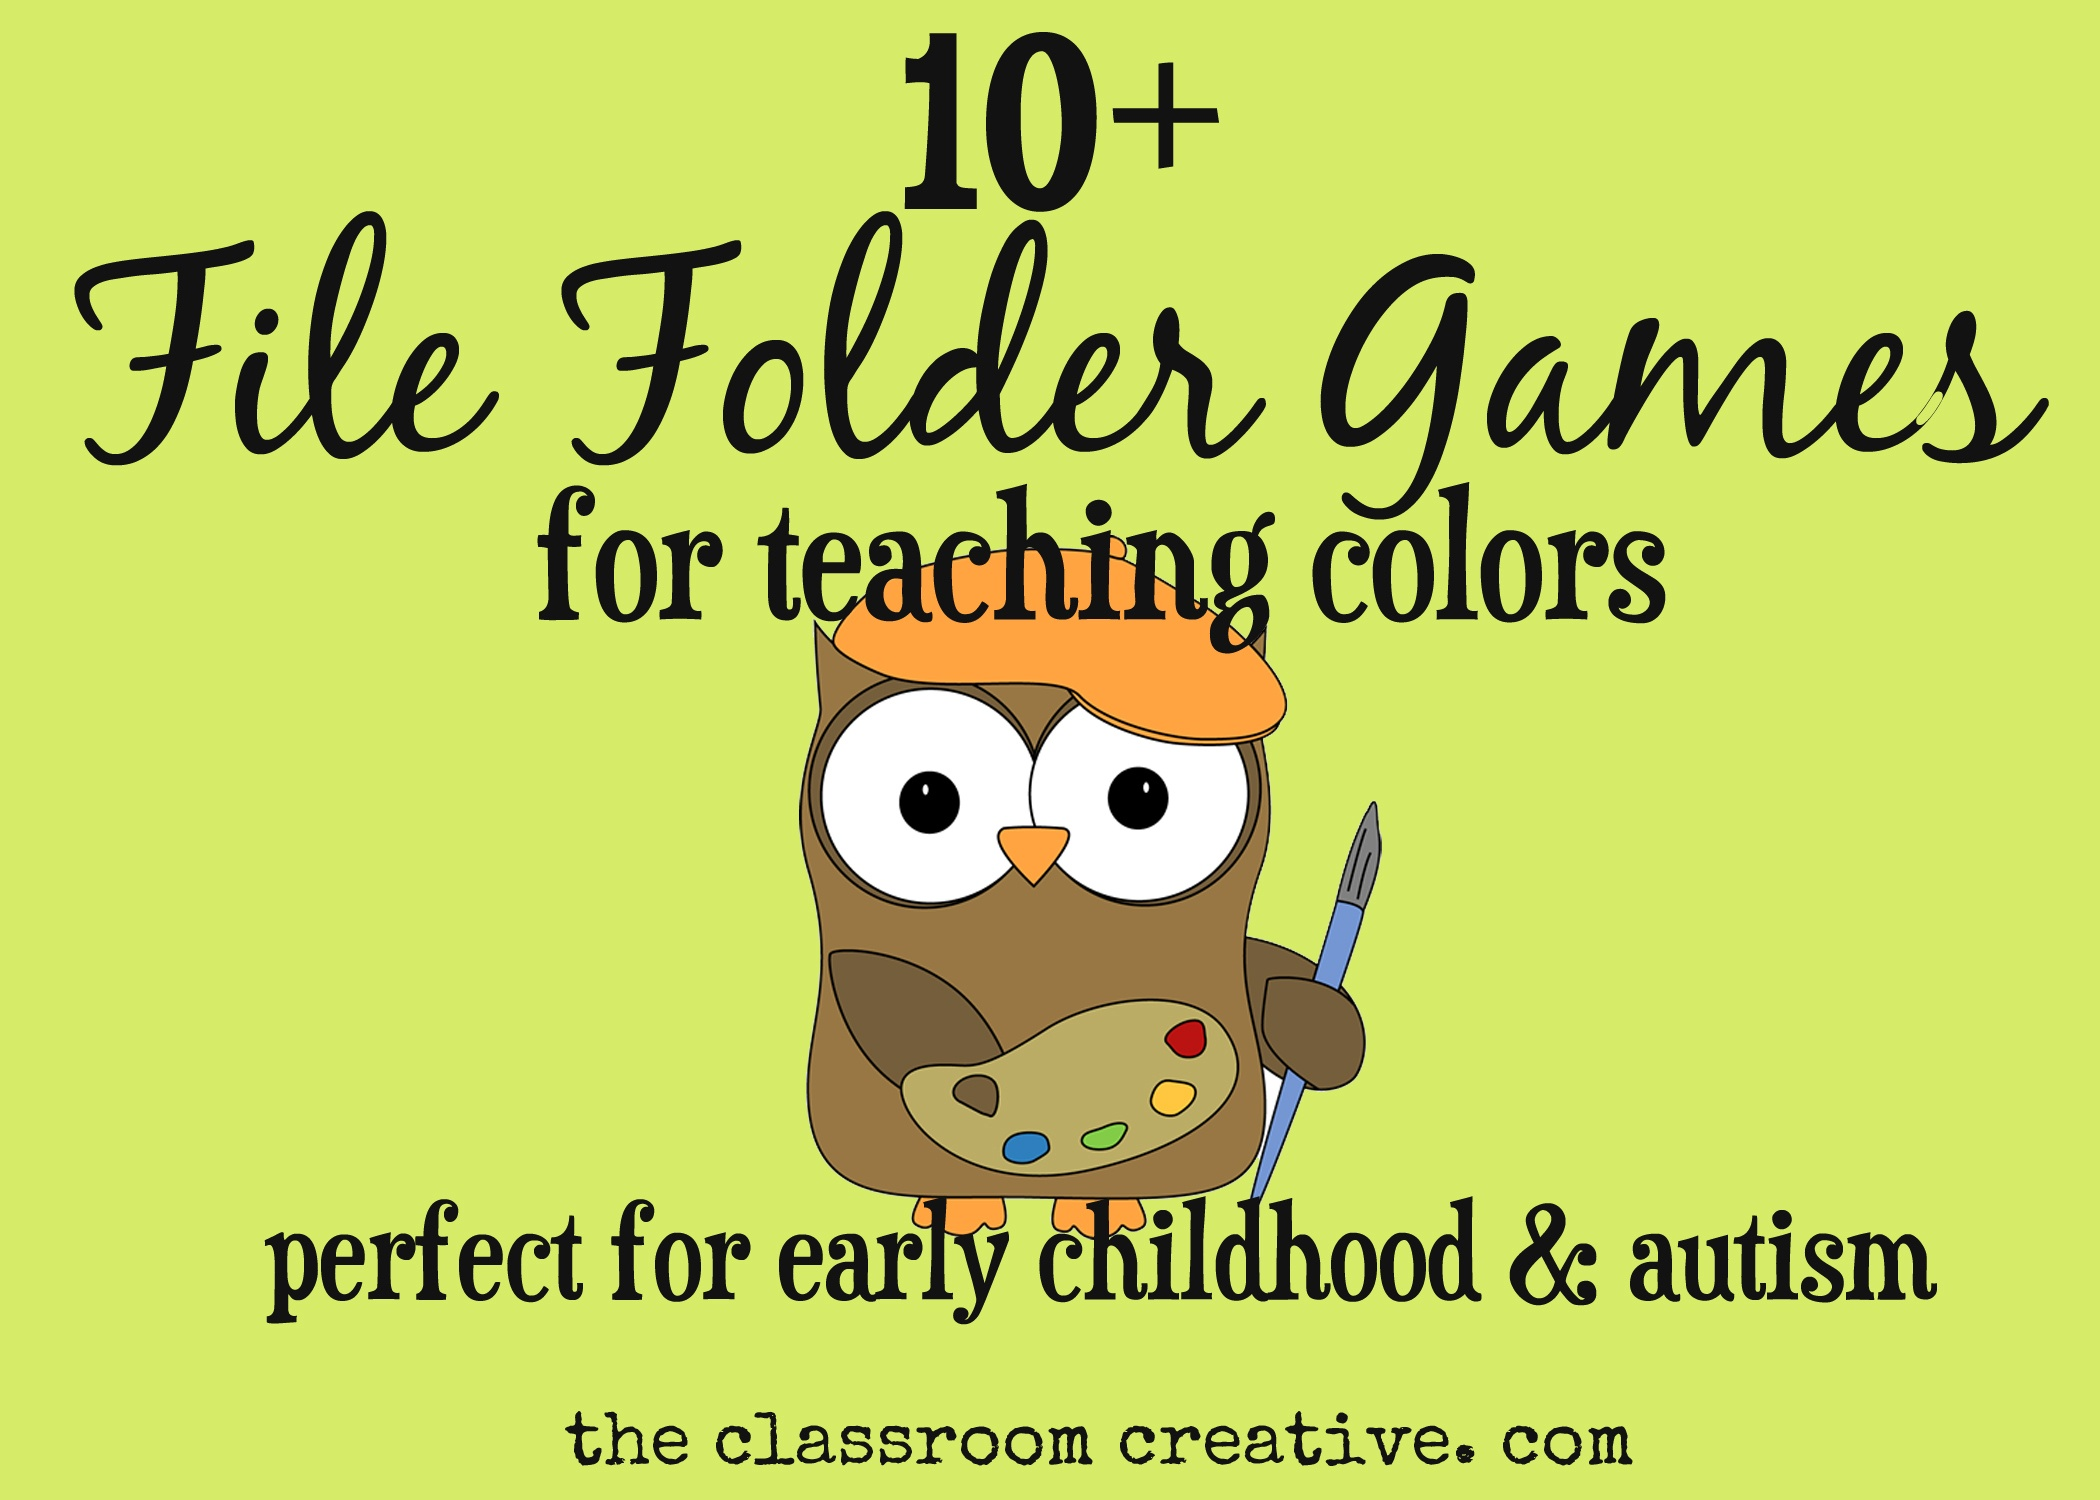 File Folder Games For Teaching Colors - Free Printable Preschool Folder Games